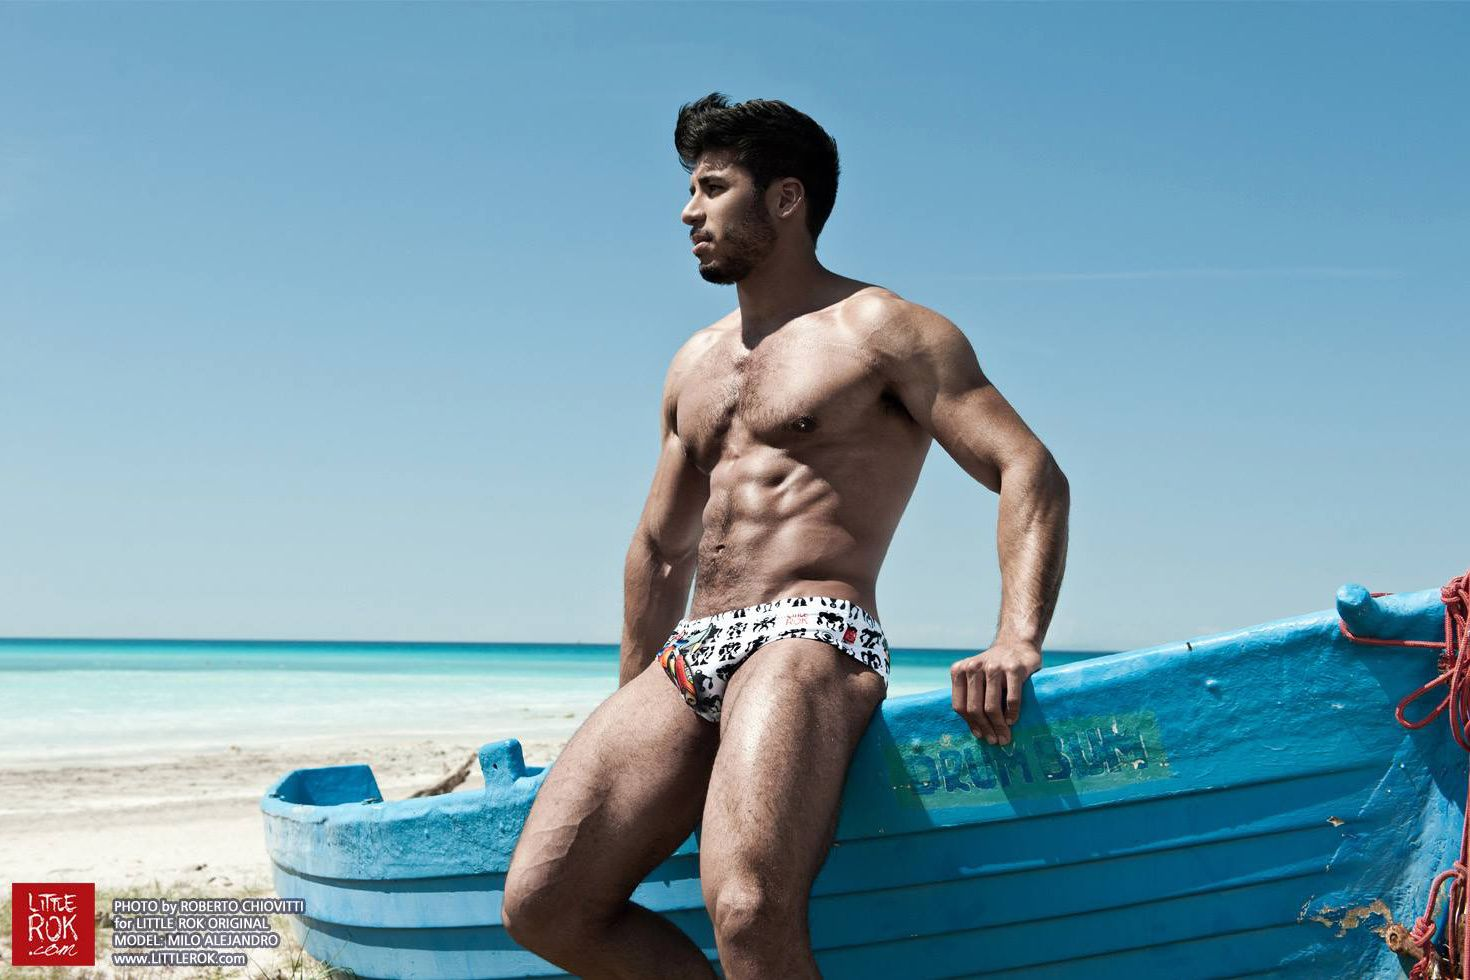 Little Rok : Swimwear collection 2015